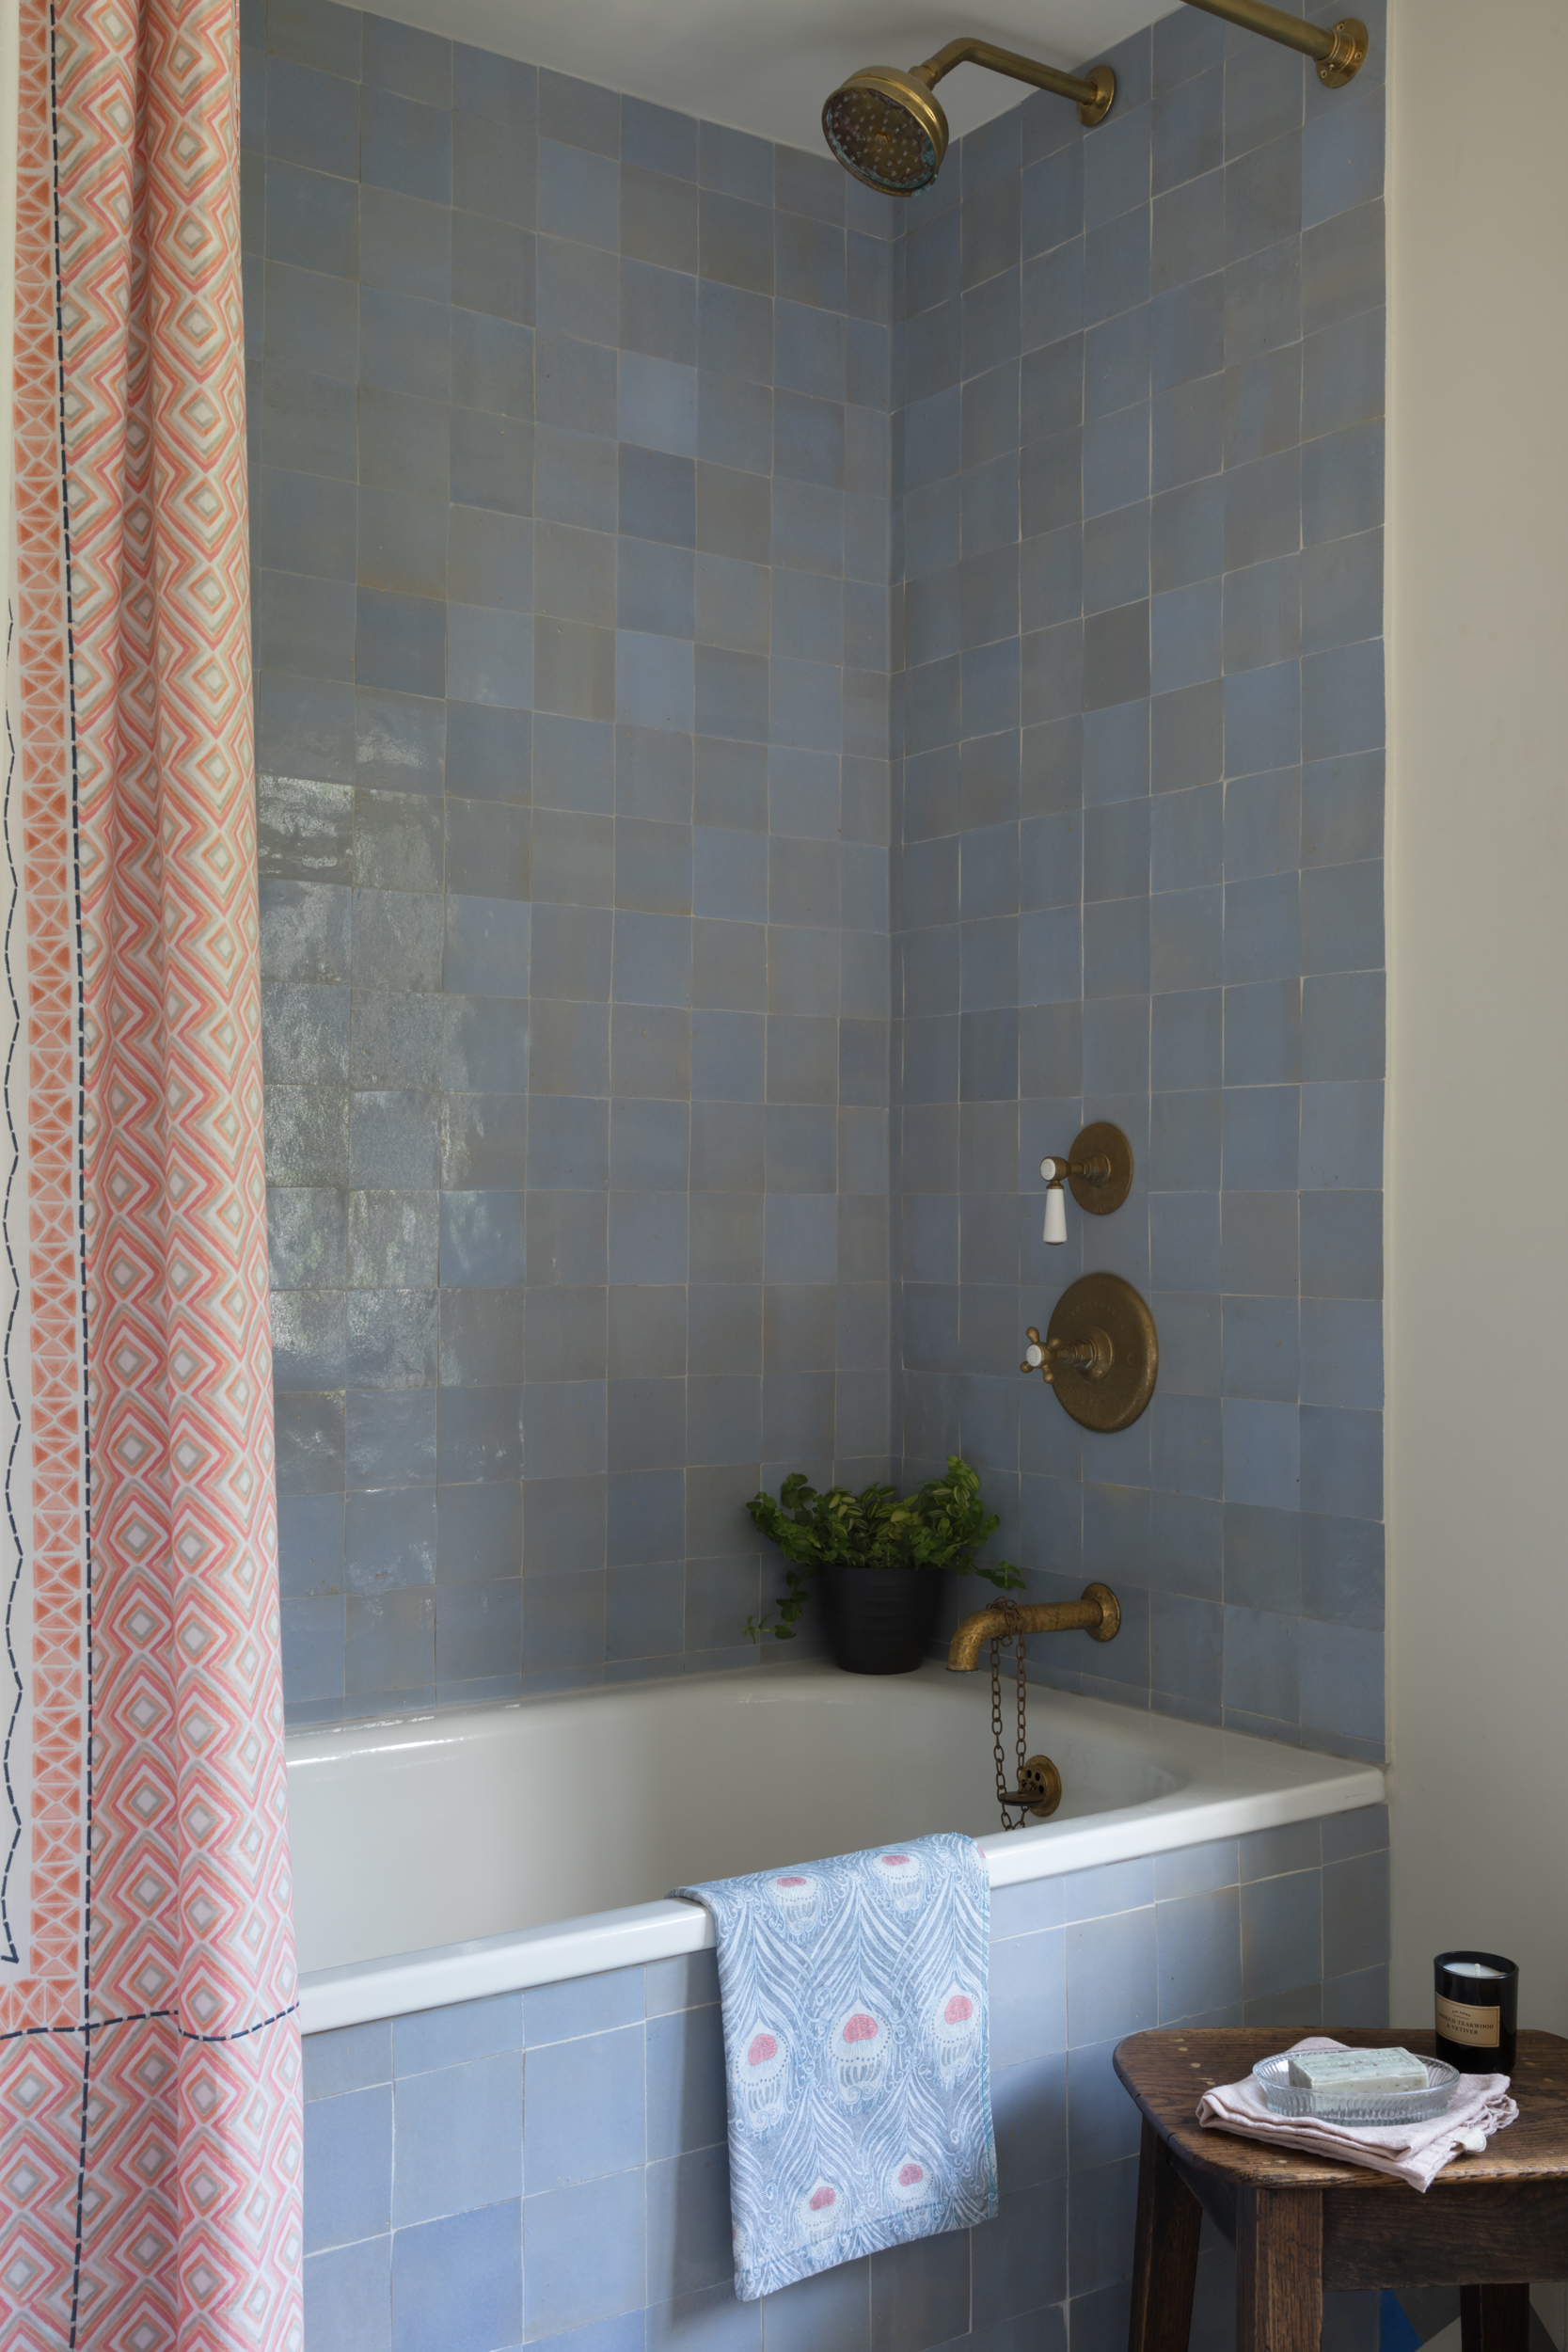 Bathroom-blue-zellige-tiles-brass-taps-alison-anderson-interiors.jpg